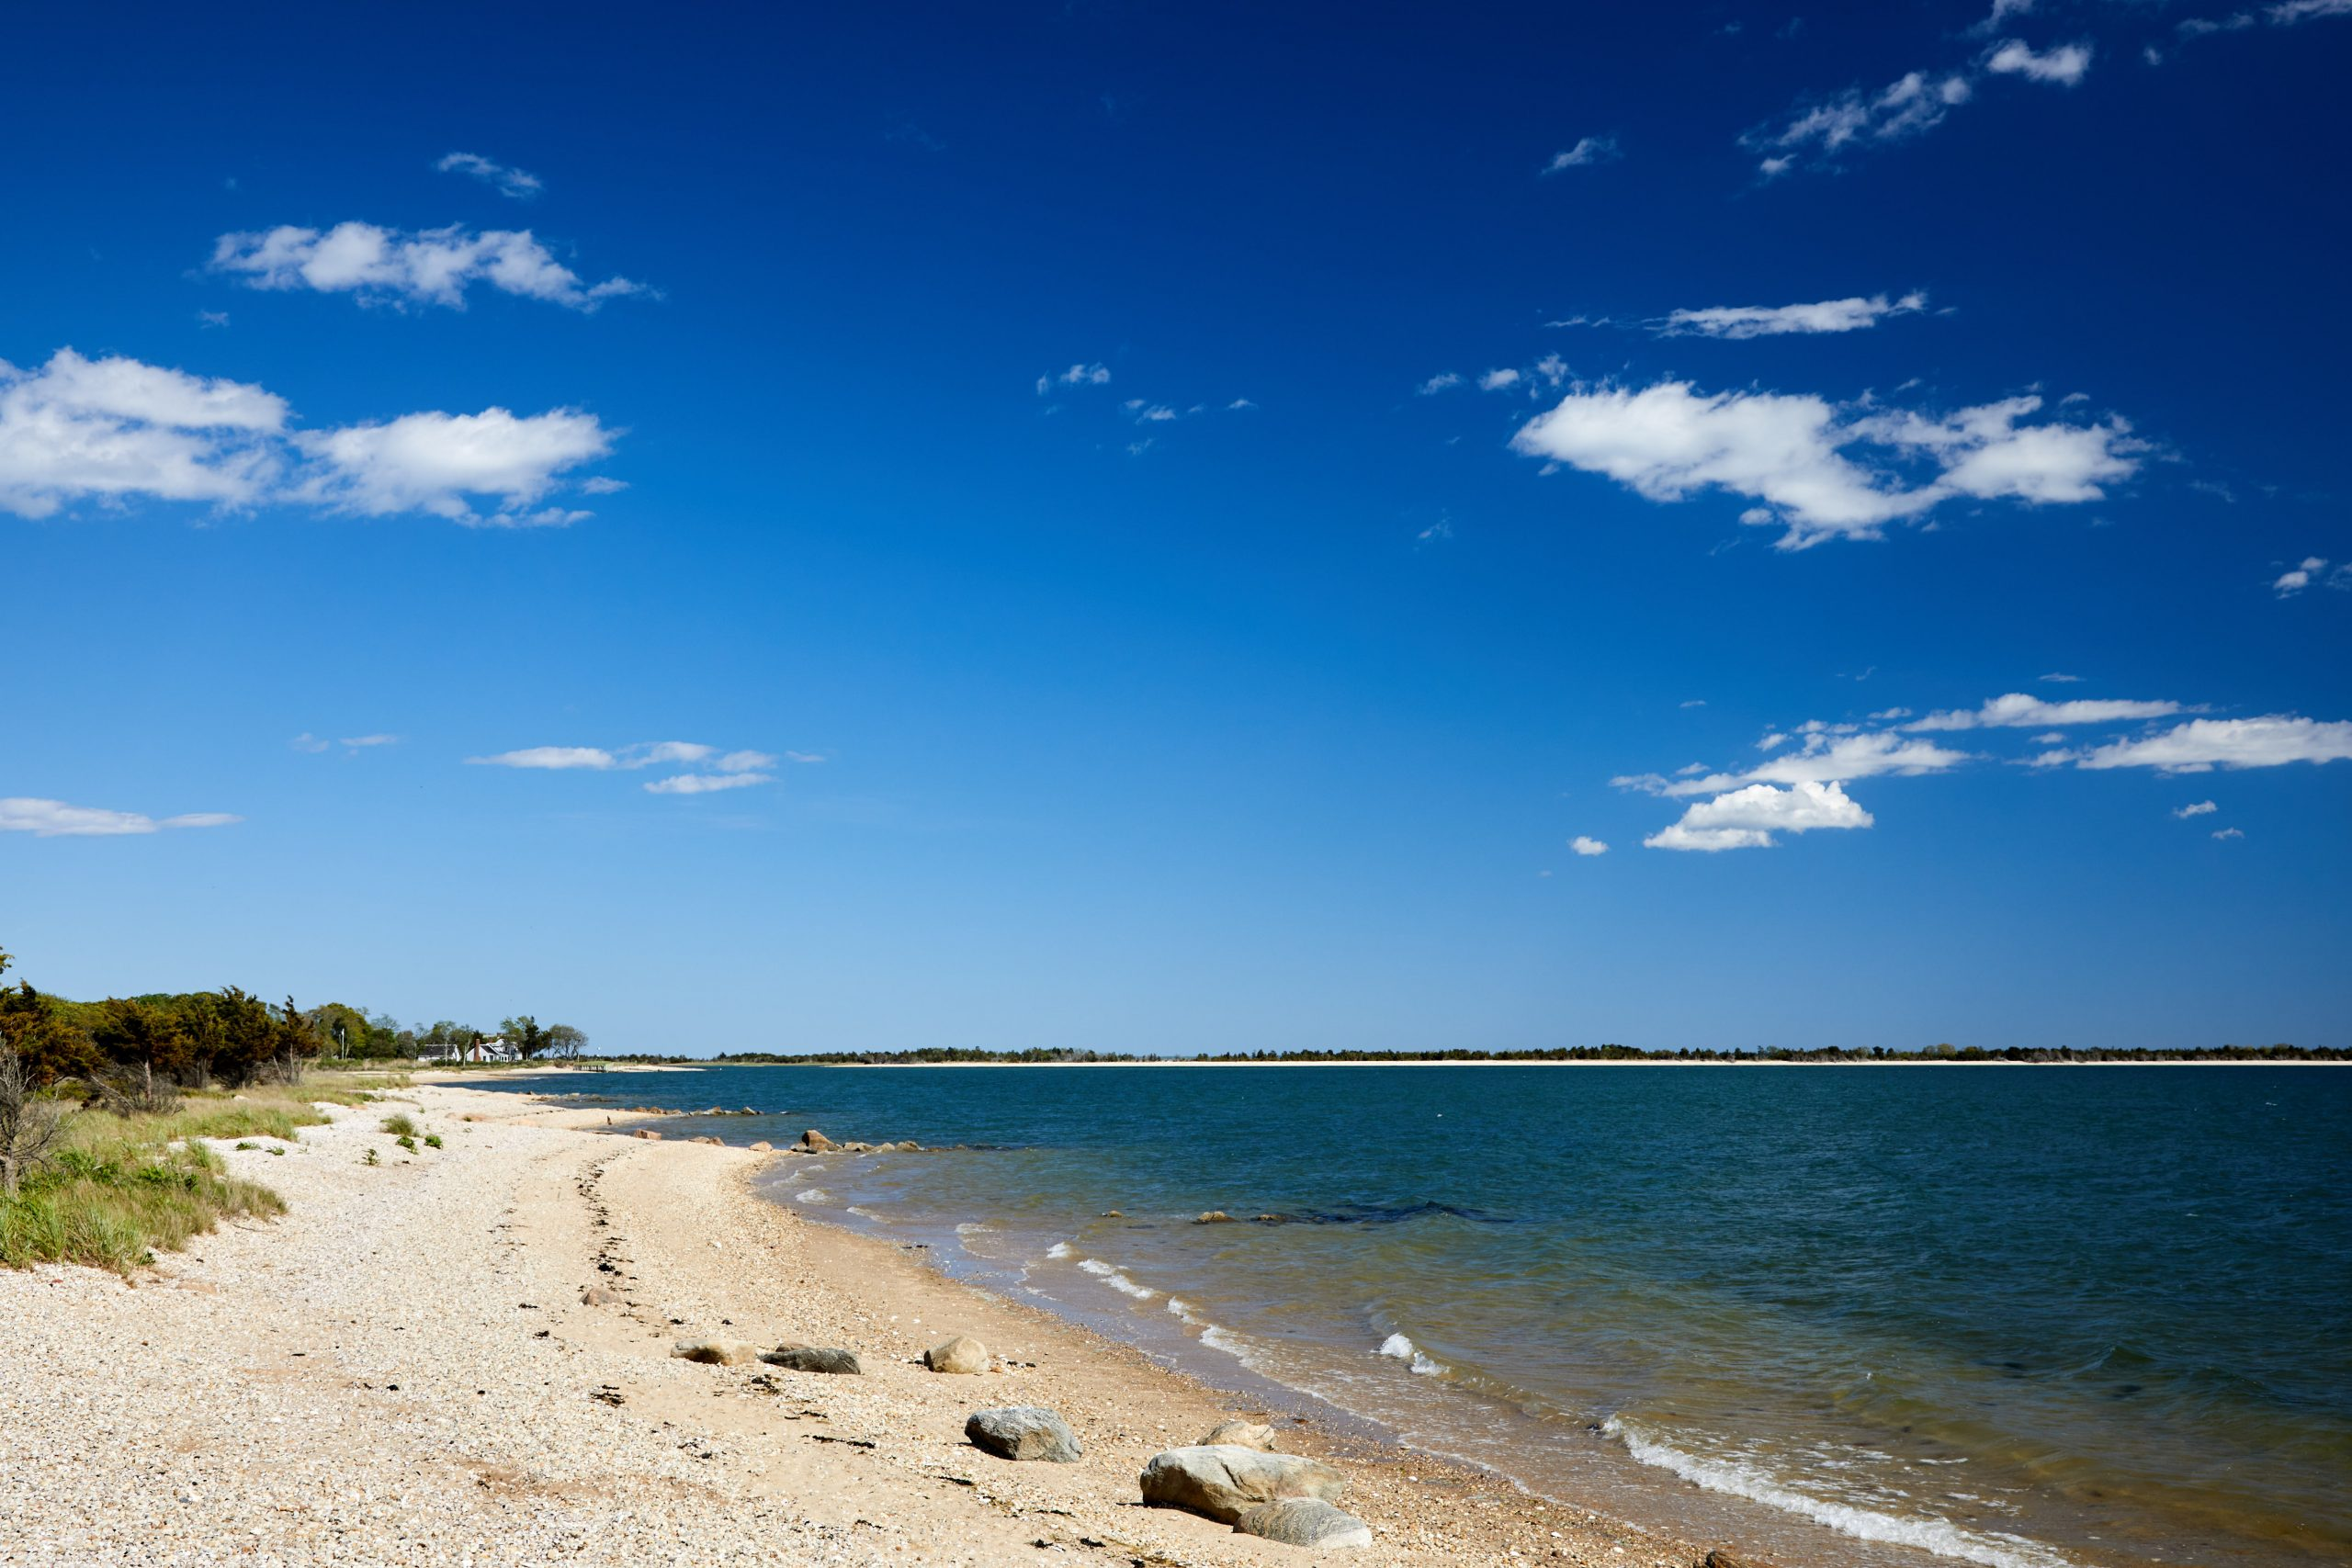 Clear beach shore with partial cloudy sky